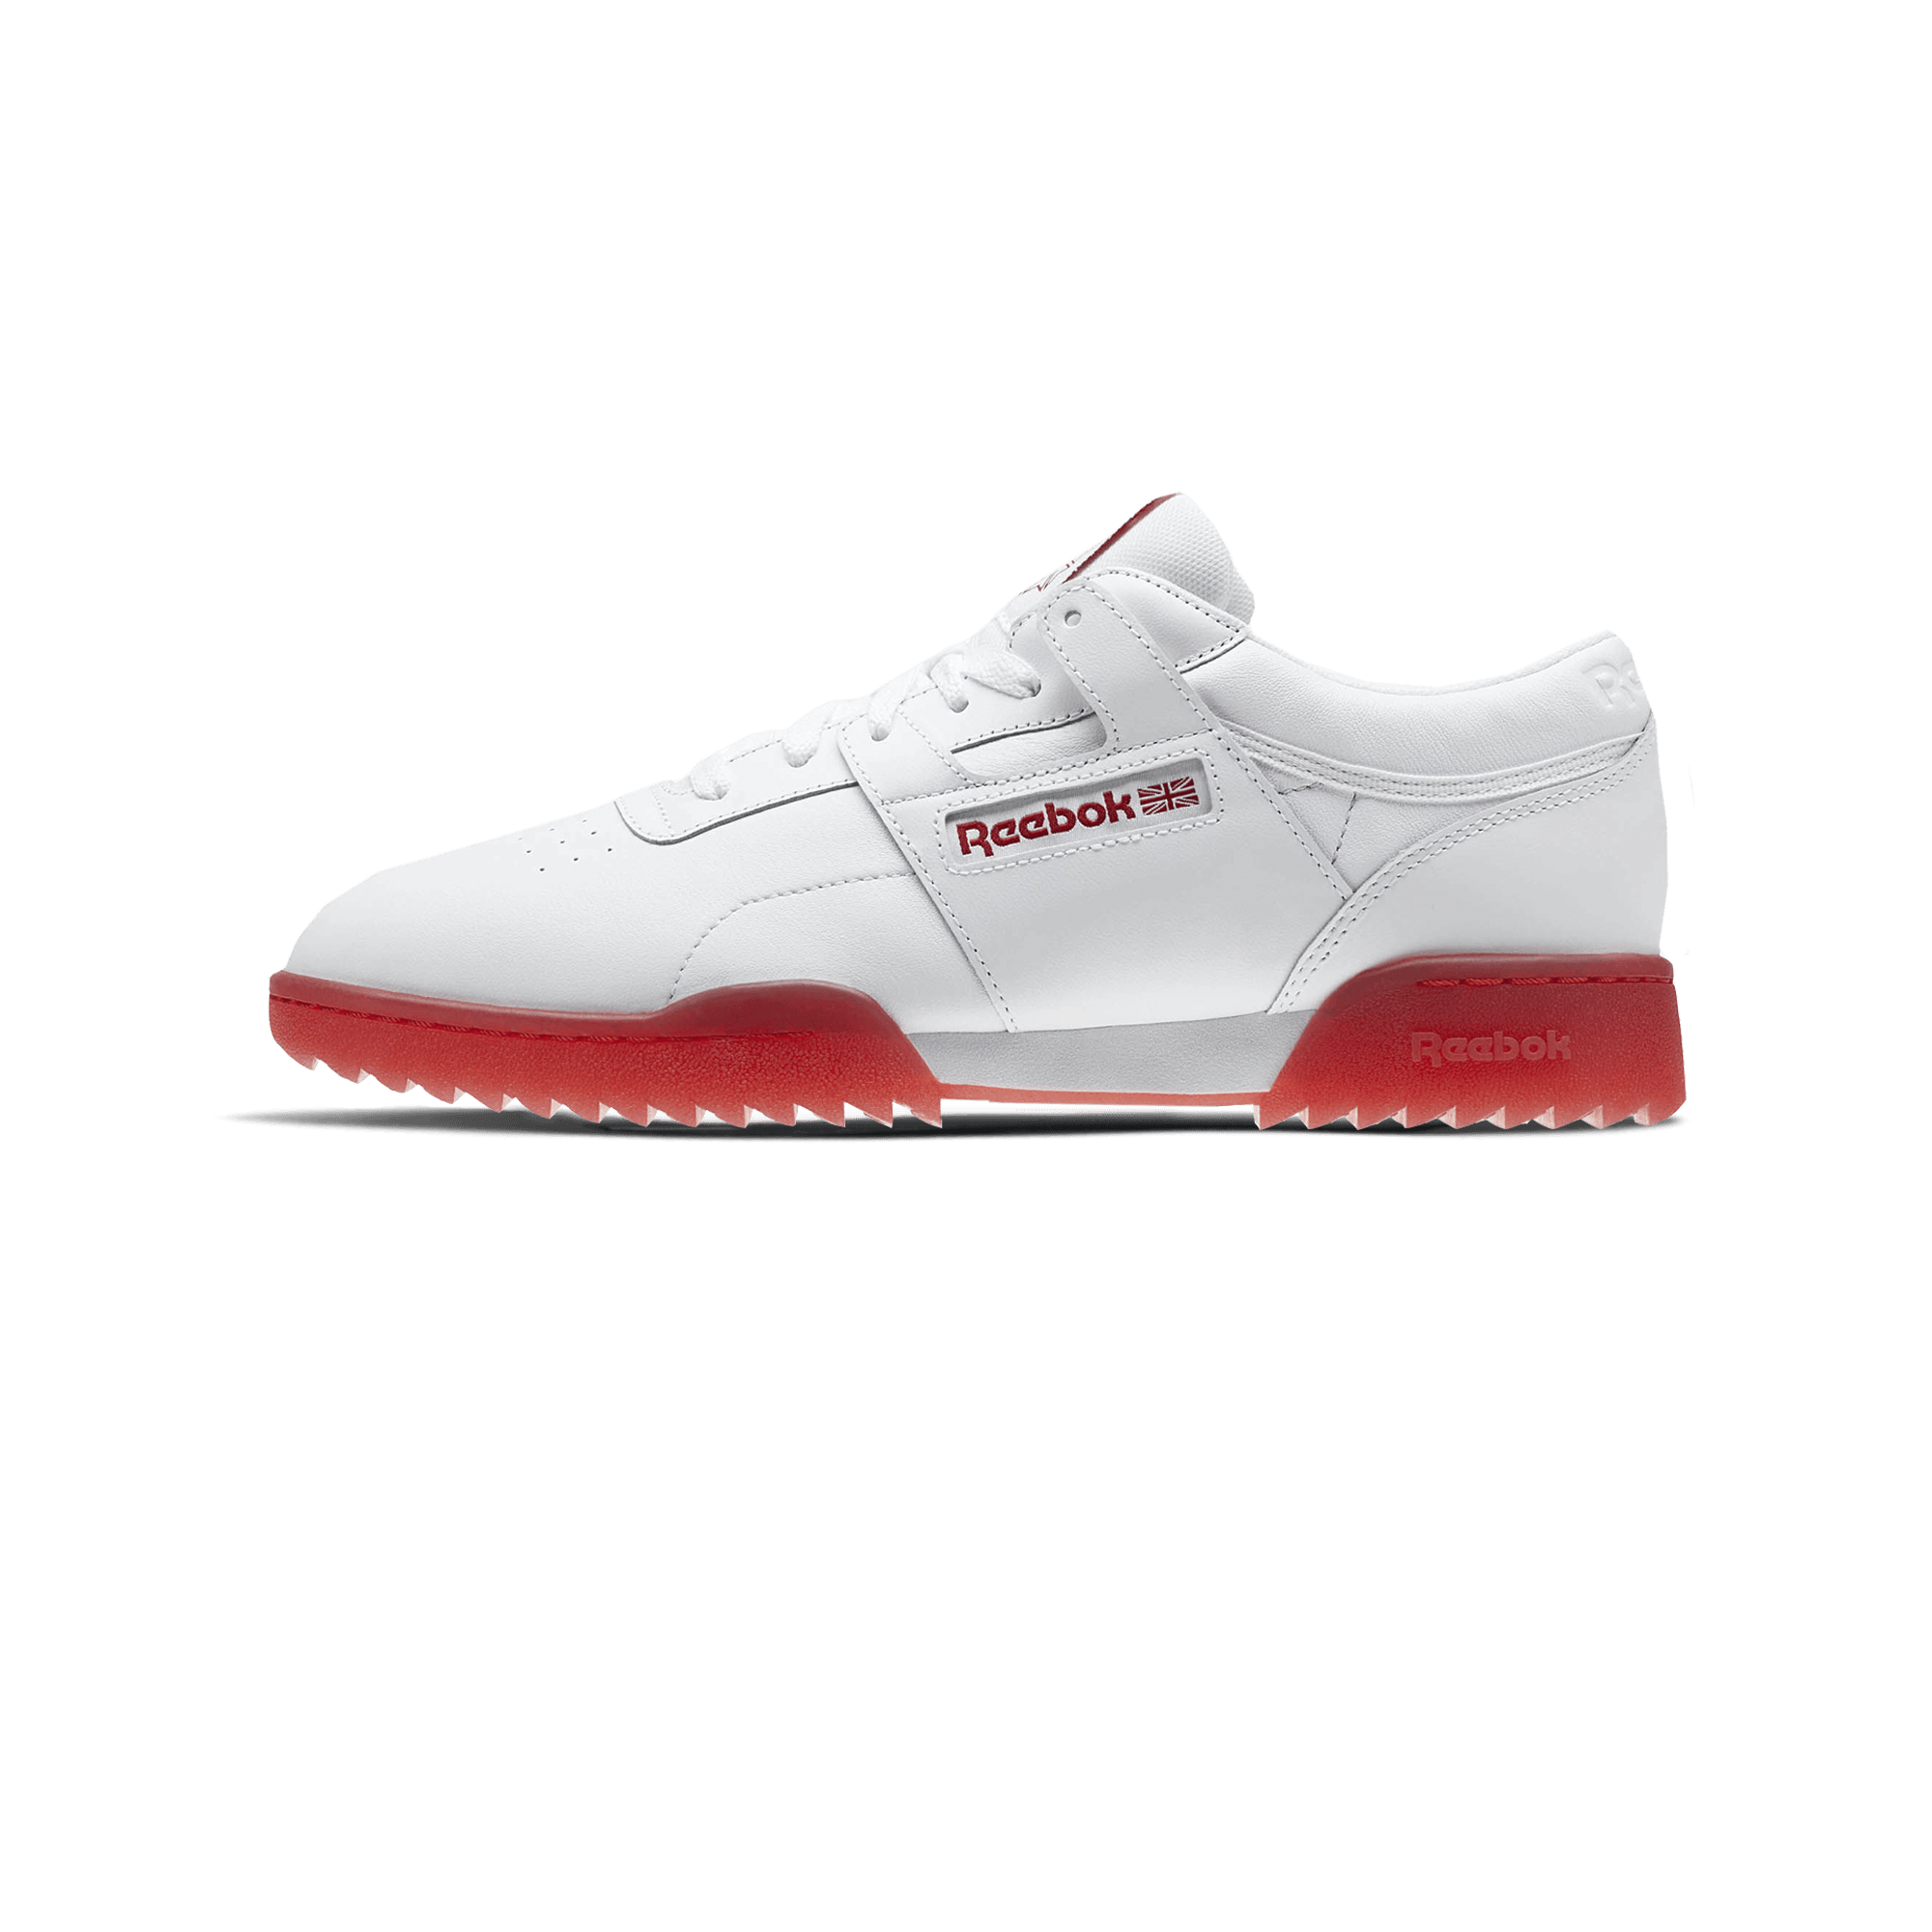 5aea71fca Reebok Workout Clean Ripple Ice white / primal red - Men ...